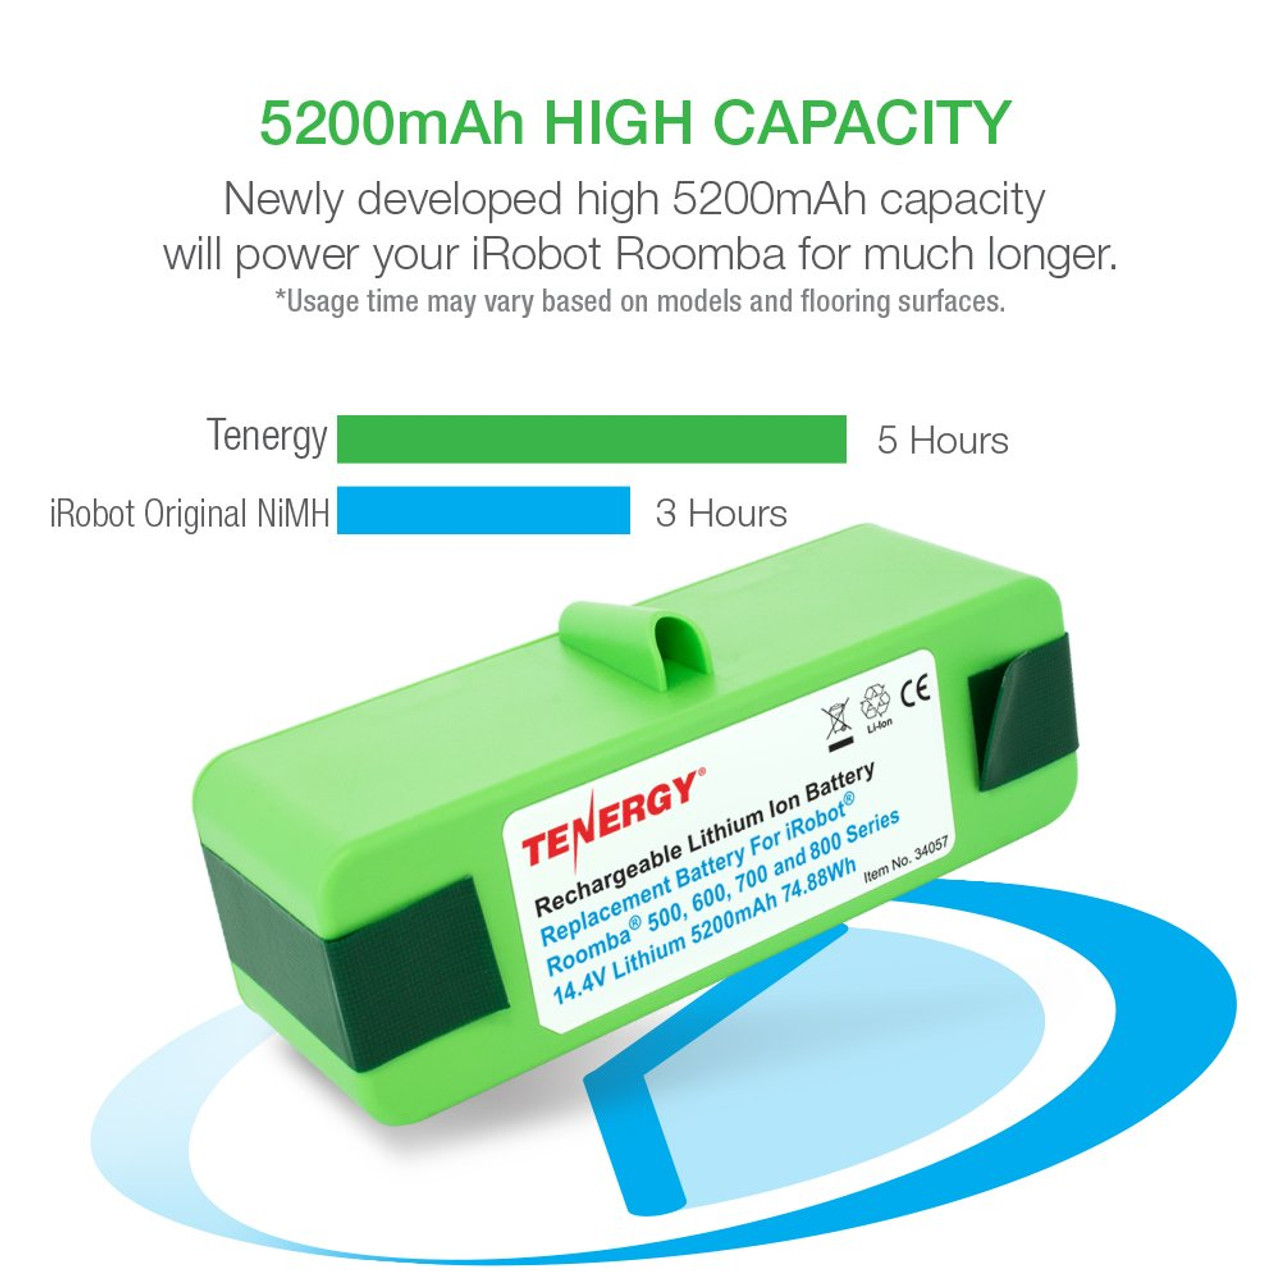 Tenergy 14.4V Lithium-ion 5200mAh Replacement Battery for iRobot Roomba 500, 600, 700, 800 Series